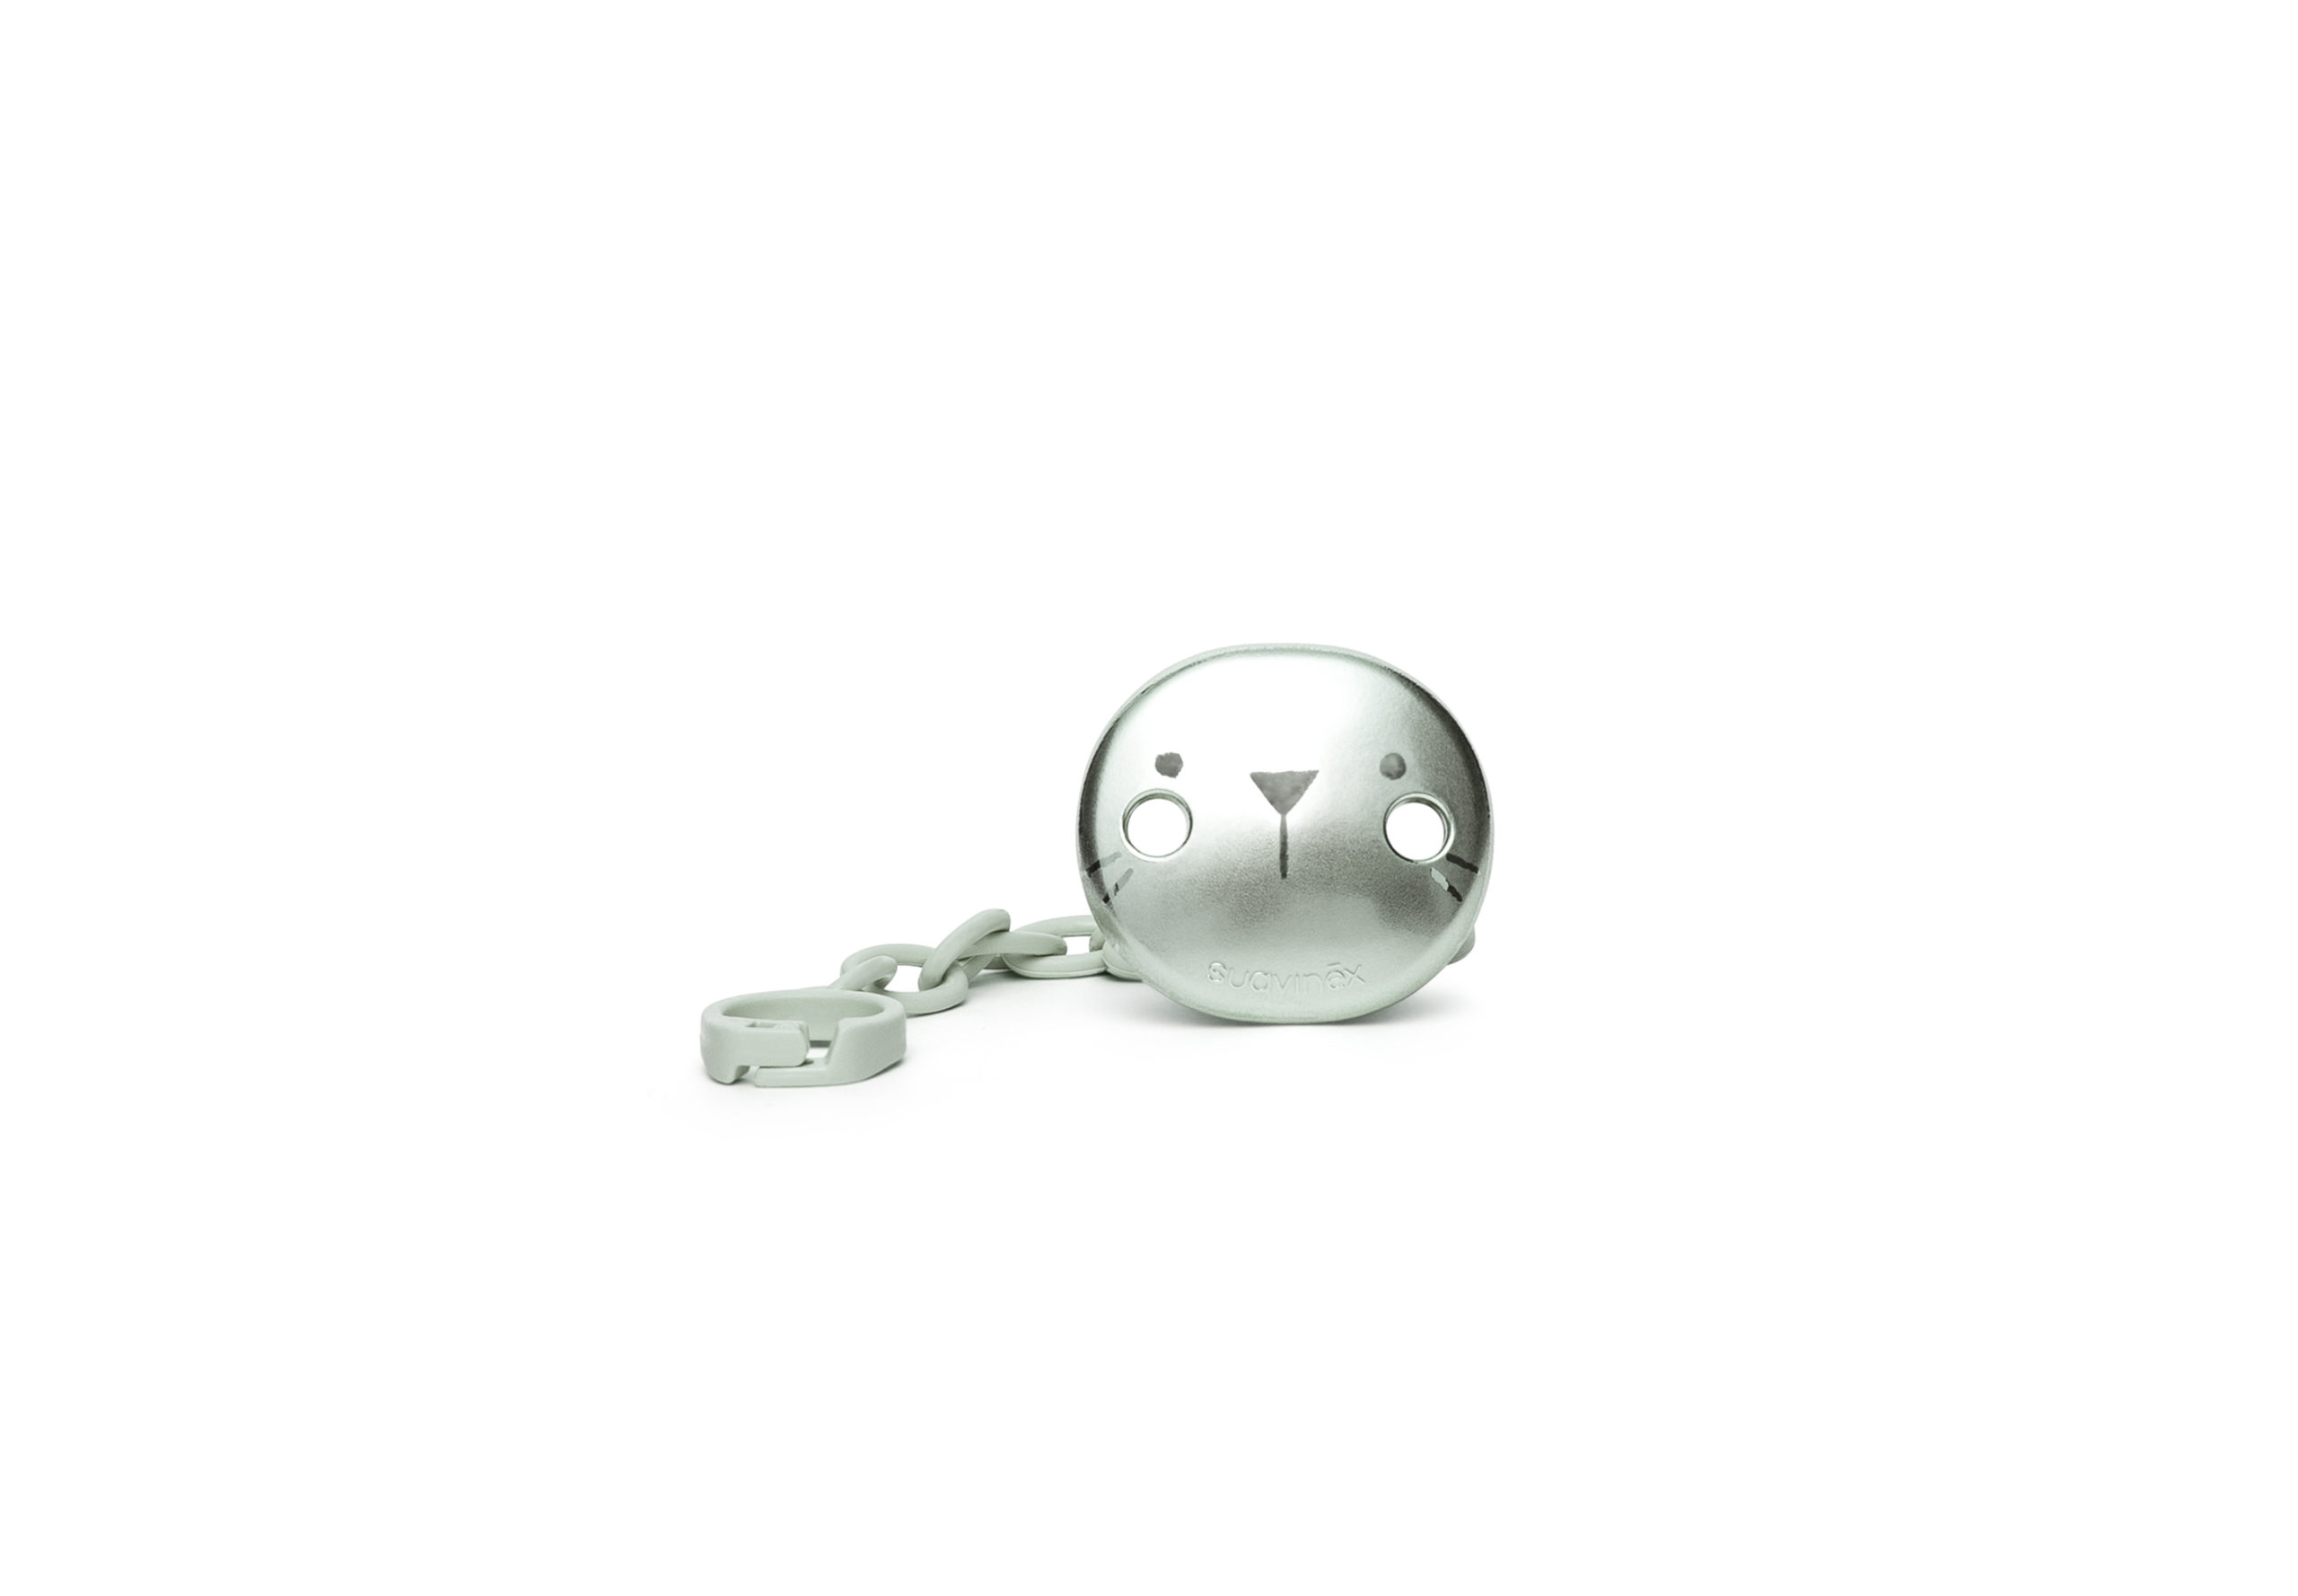 8426420068703_S PREMIUM SOOTHER CHAIN HYGGE GR L1